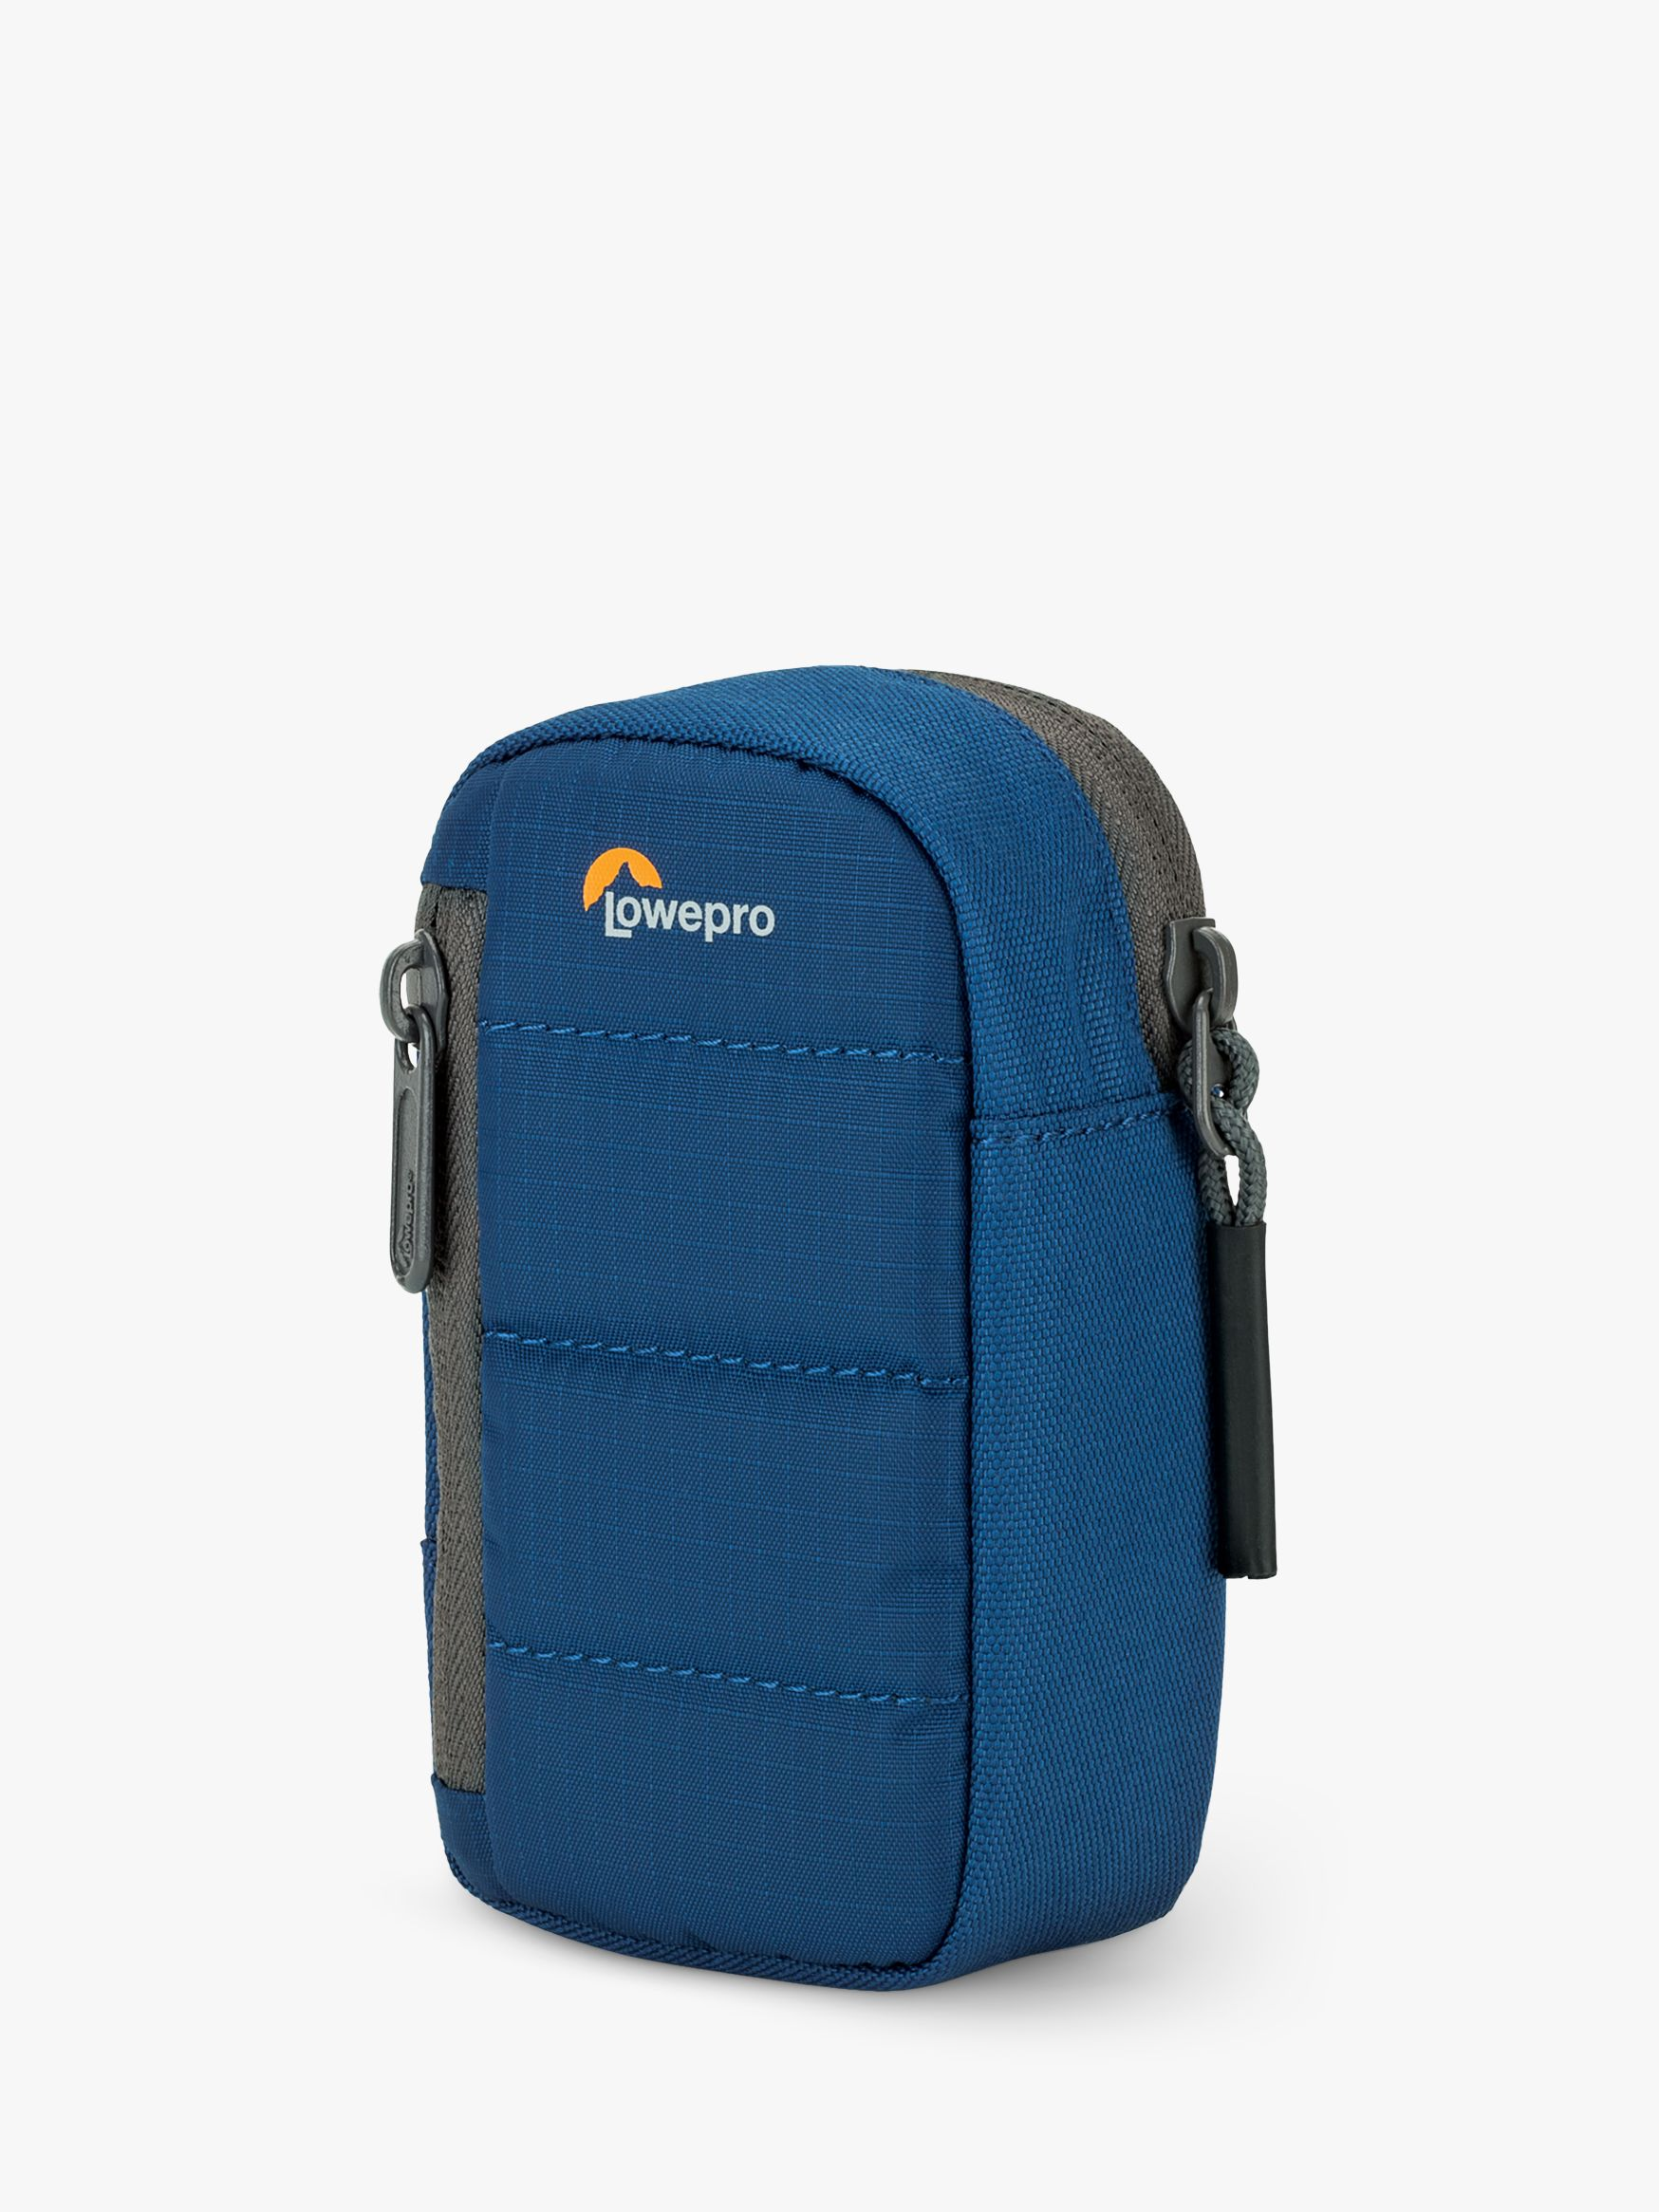 Lowepro Lowepro Tahoe CS 20 Camera Case